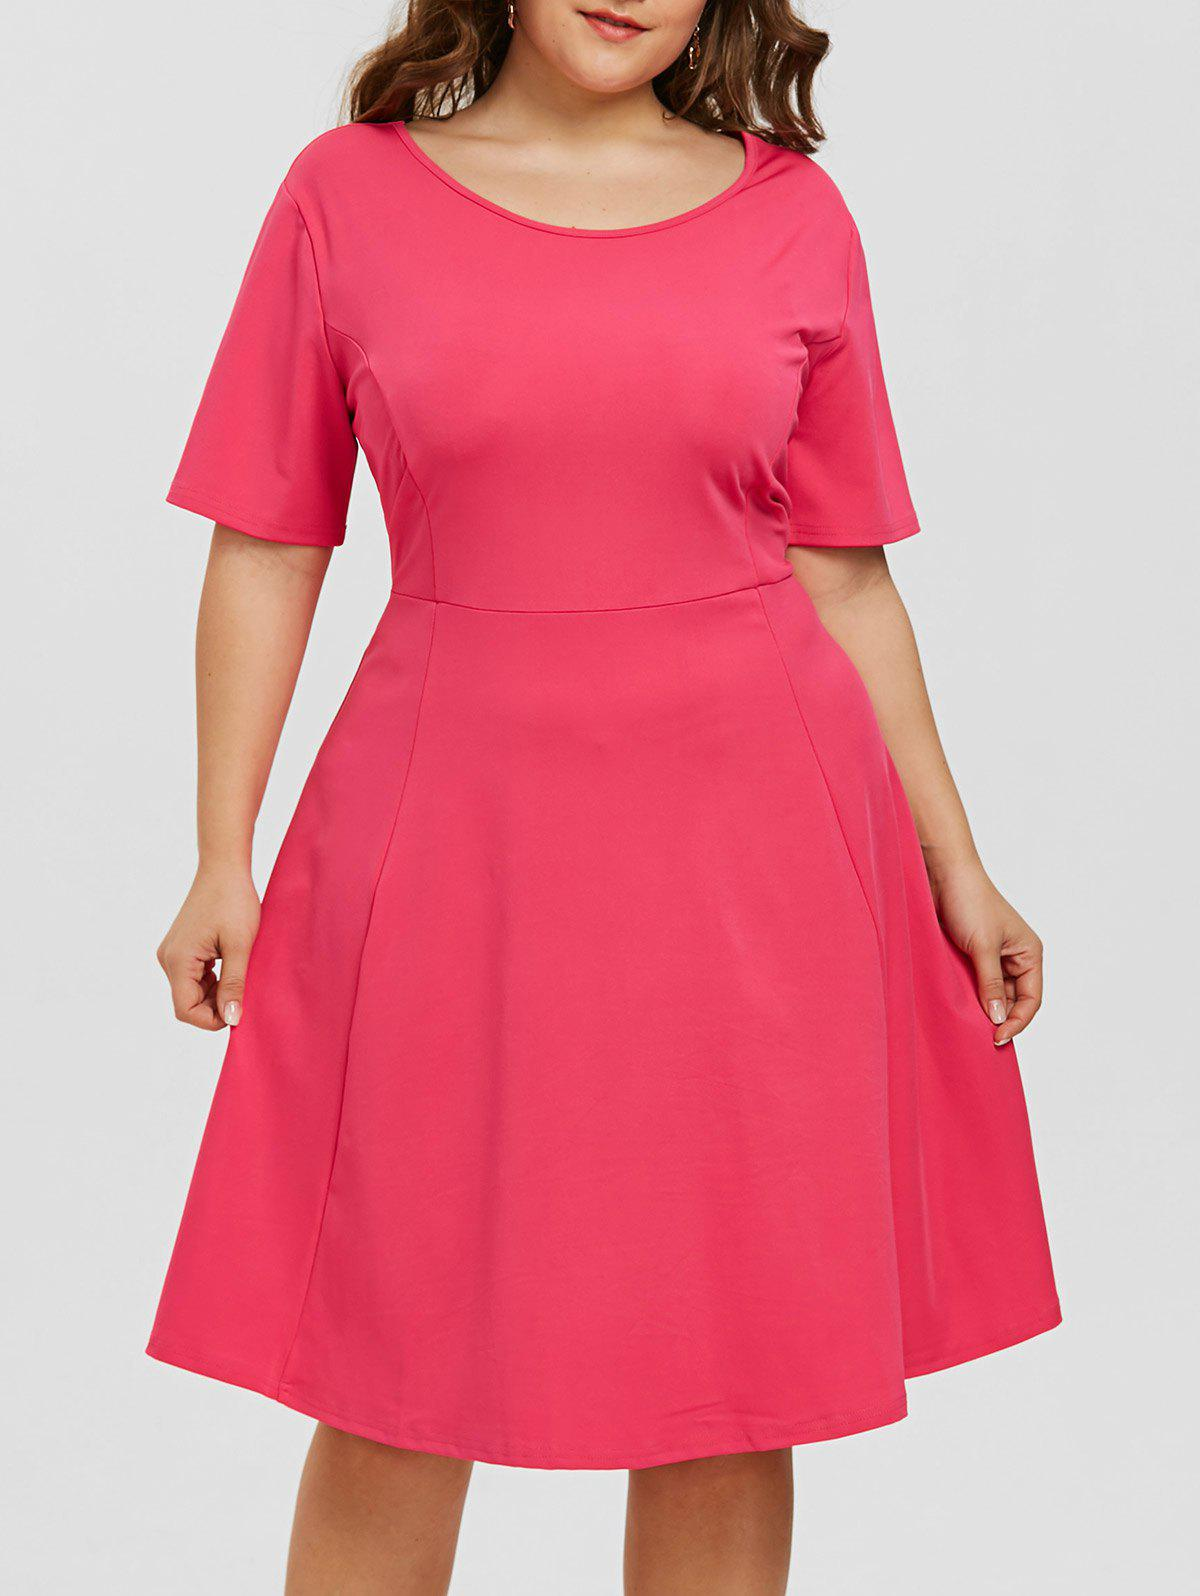 Best Scoop Neck A Line Plus Size Dress